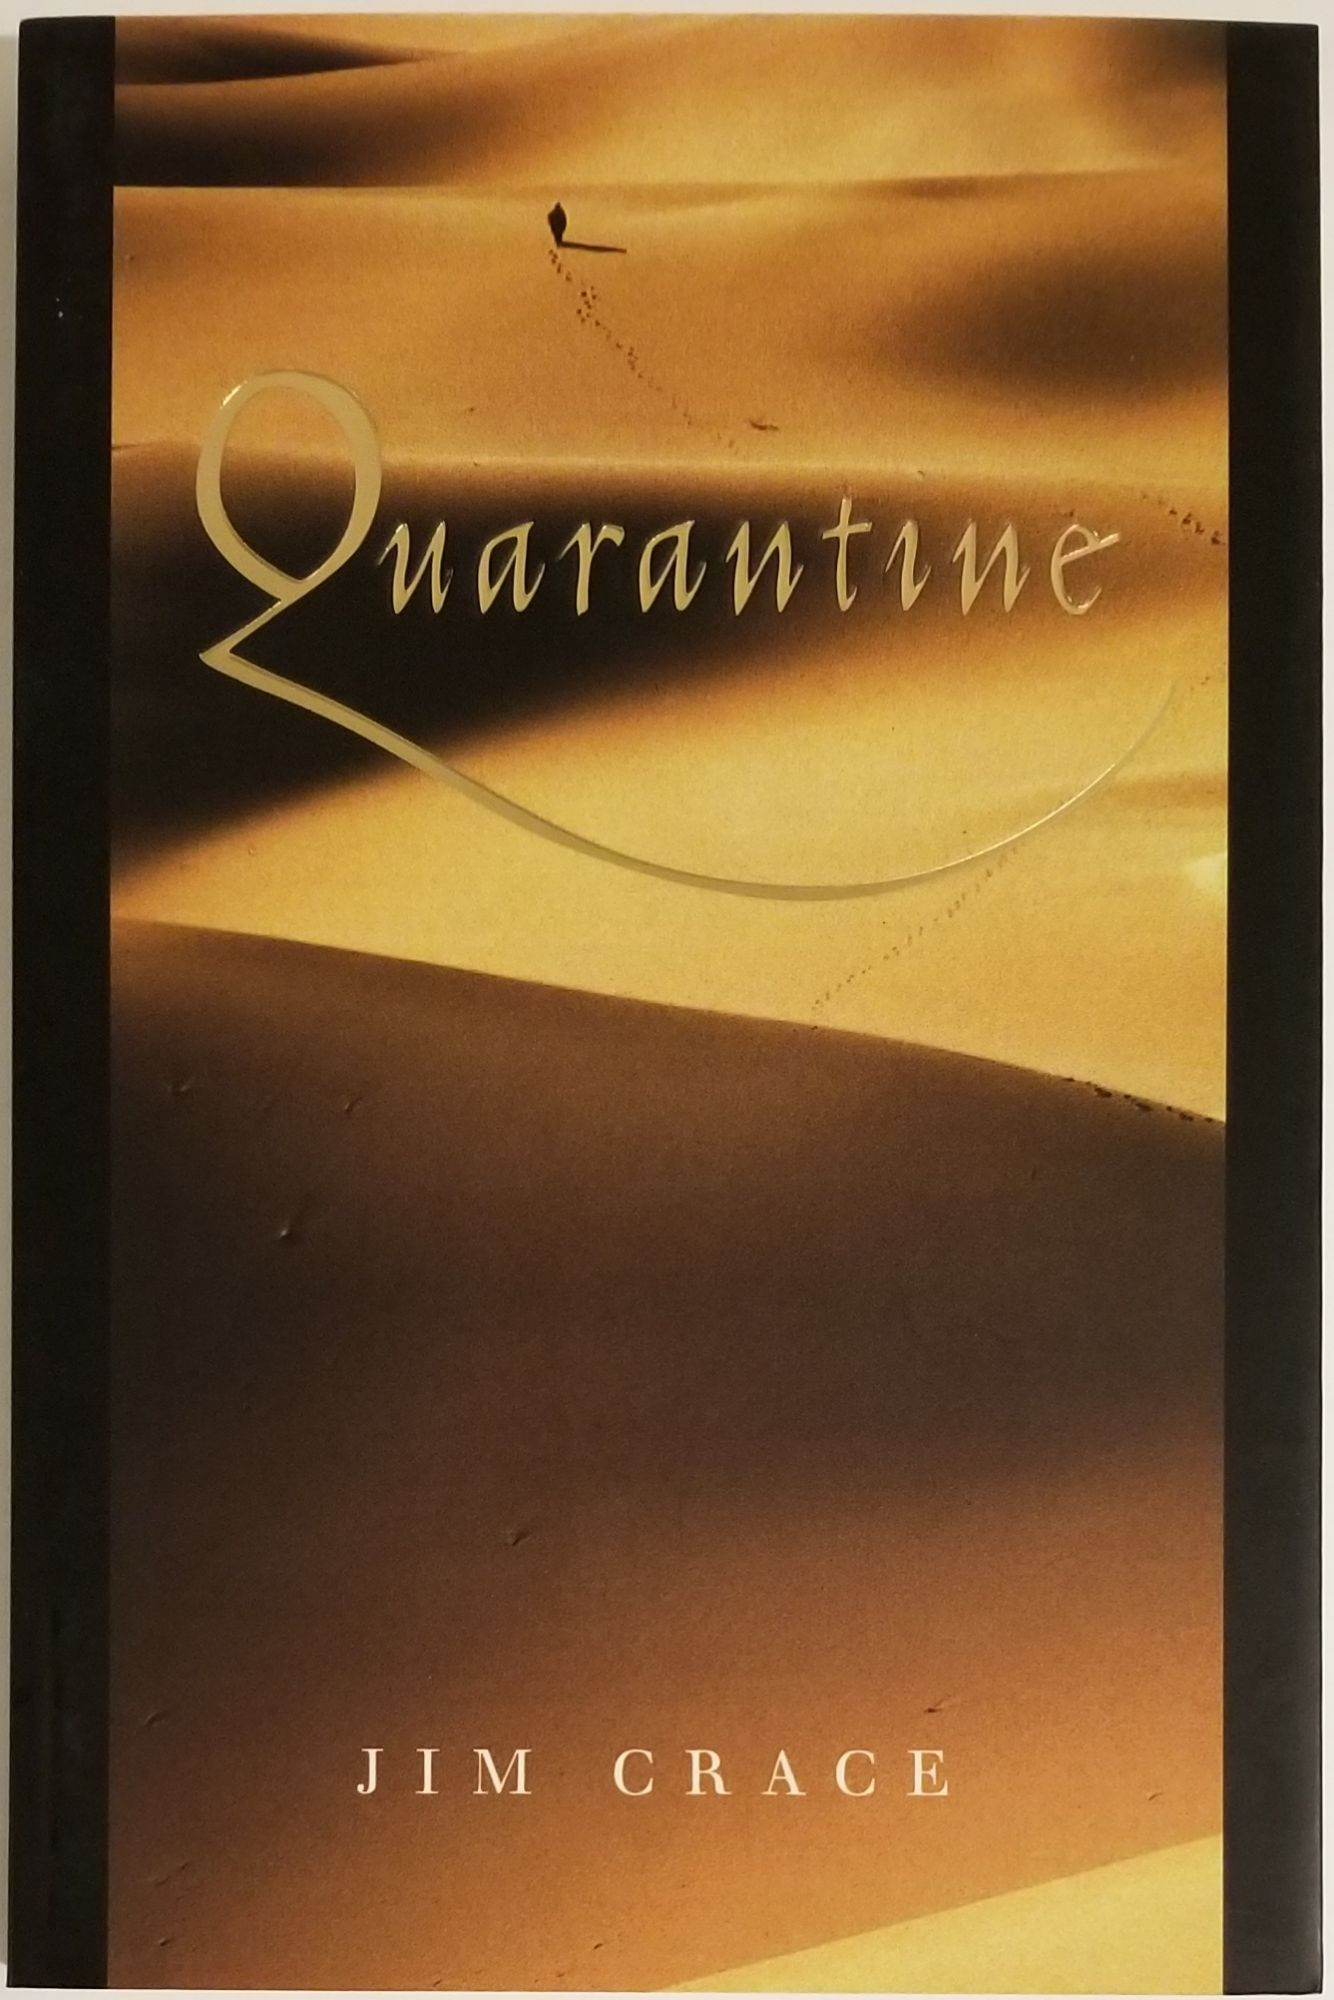 QUARANTINE. Jim Crace.